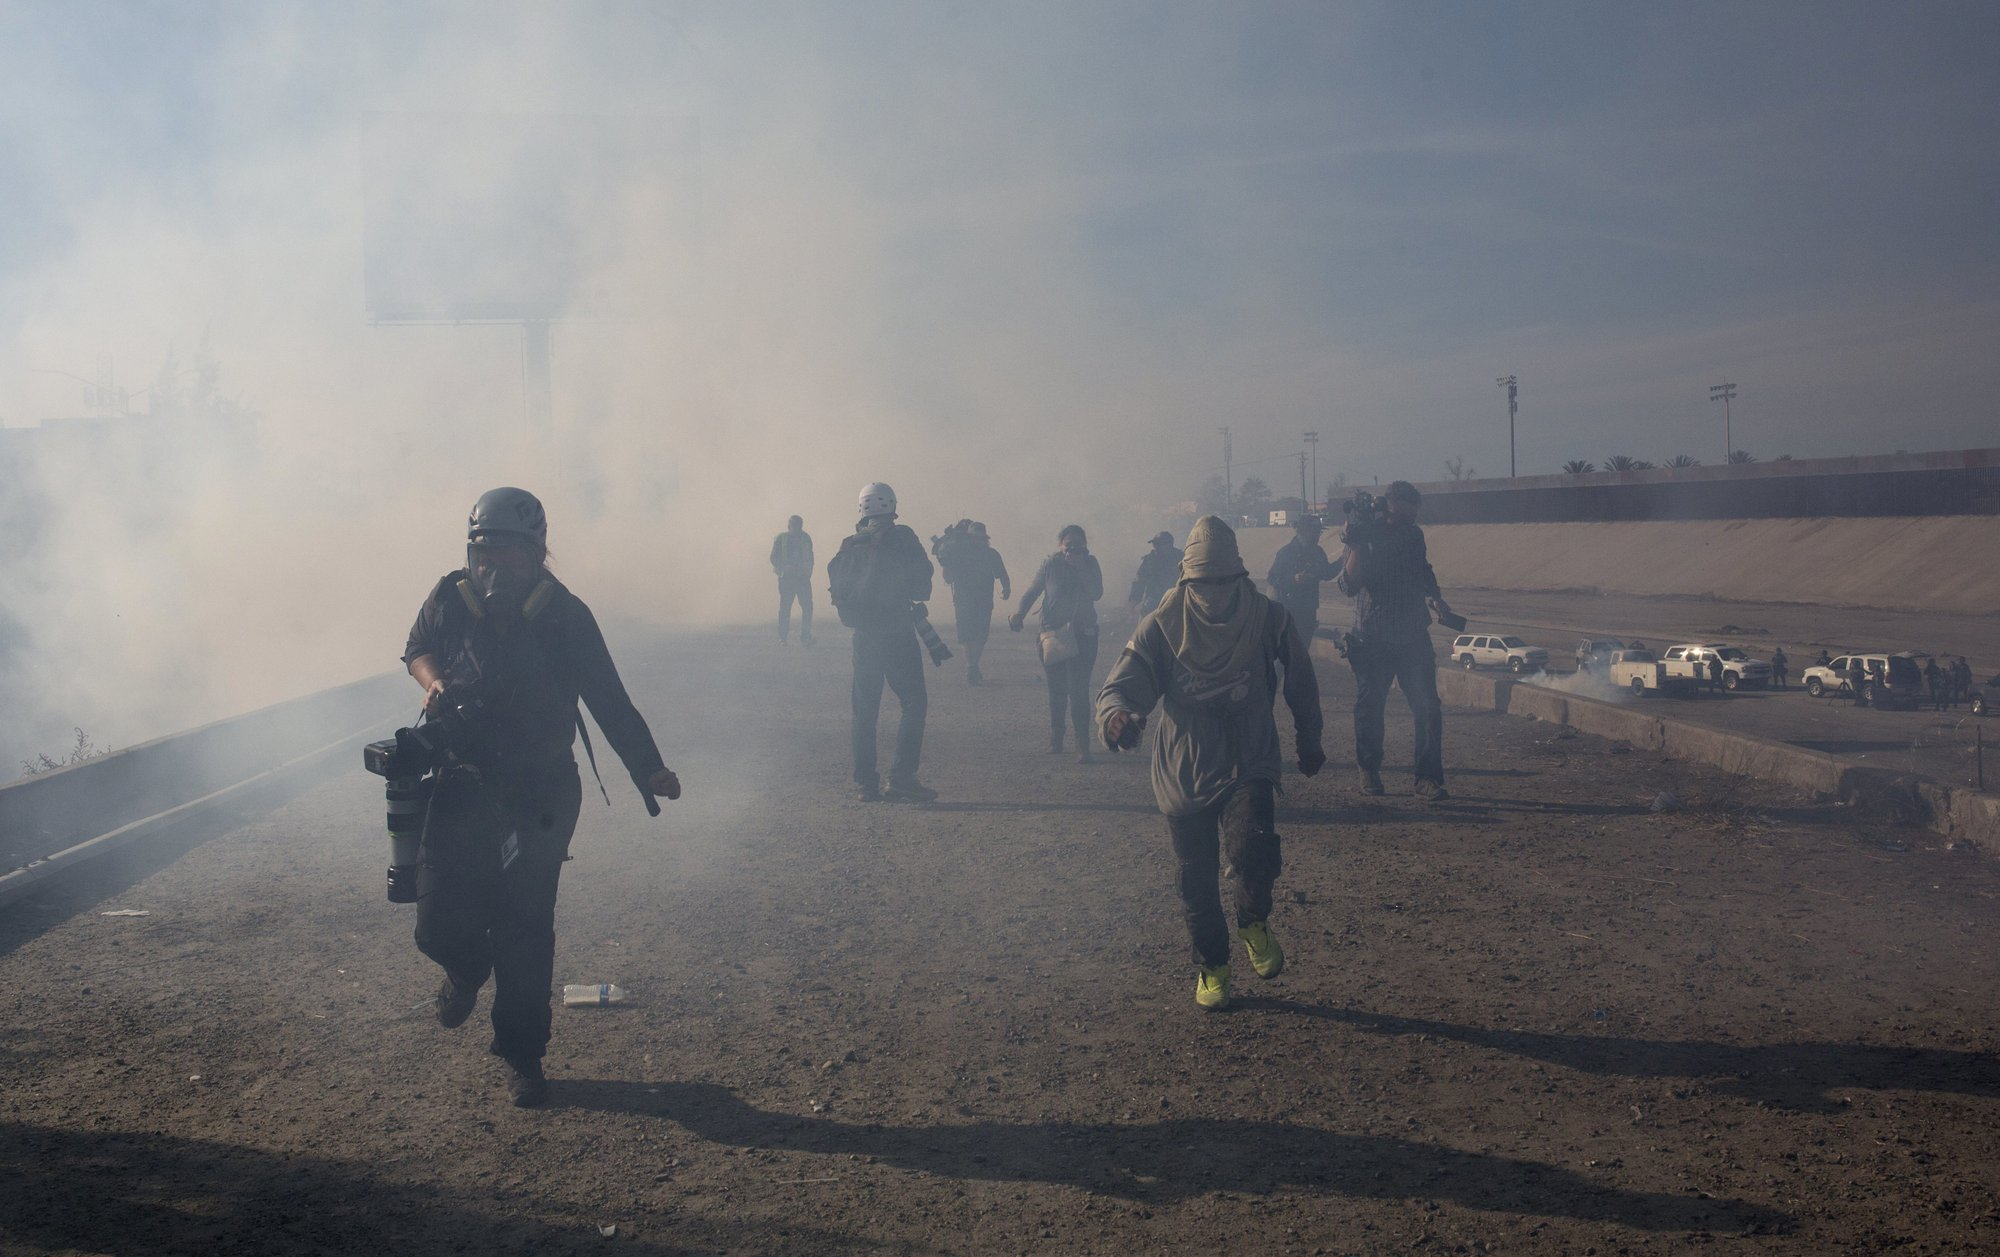 Migrants run from tear gas launched by U.S. agents, amid photojournalists covering the Mexico-U.S. border, after a group of migrants got past Mexican police at the Chaparral crossing in Tijuana, Mexico, on Sunday, Nov. 25, 2018. Photo: AP